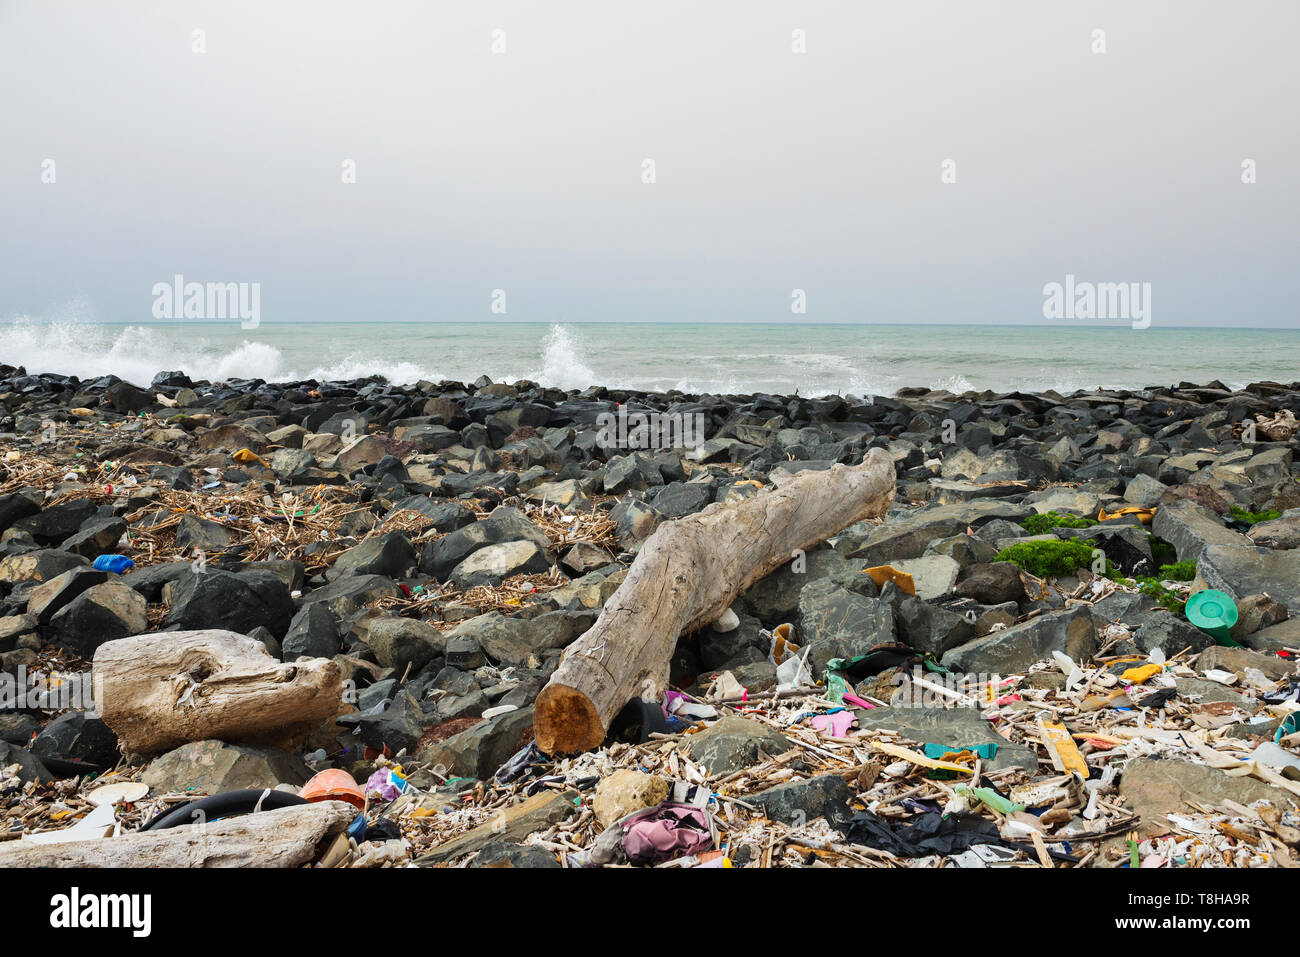 Spilled garbage on the beach near the big city. Empty used dirty plastic bottles and other garbage. Environmental pollution. Ecological problem. - Stock Image